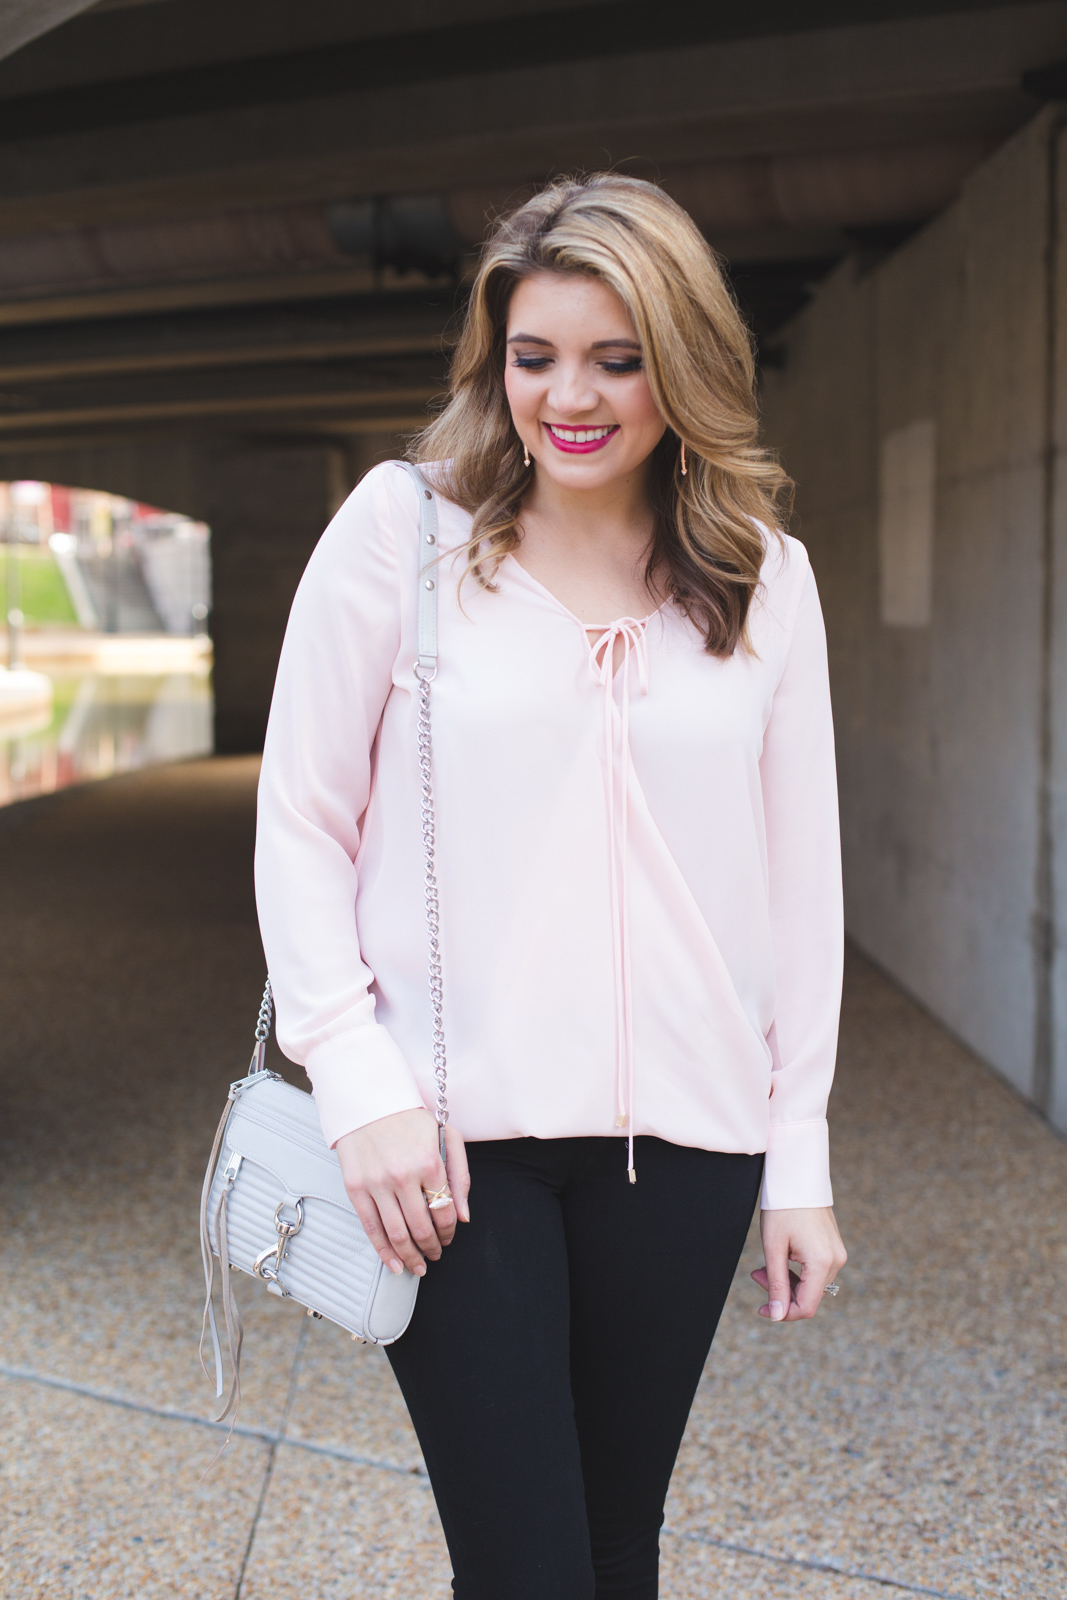 spring work to weekend outfit - blush wrap top with black jeans. | Click through for more Spring outfit inspiration or to shop this look! www.bylaurenm.com